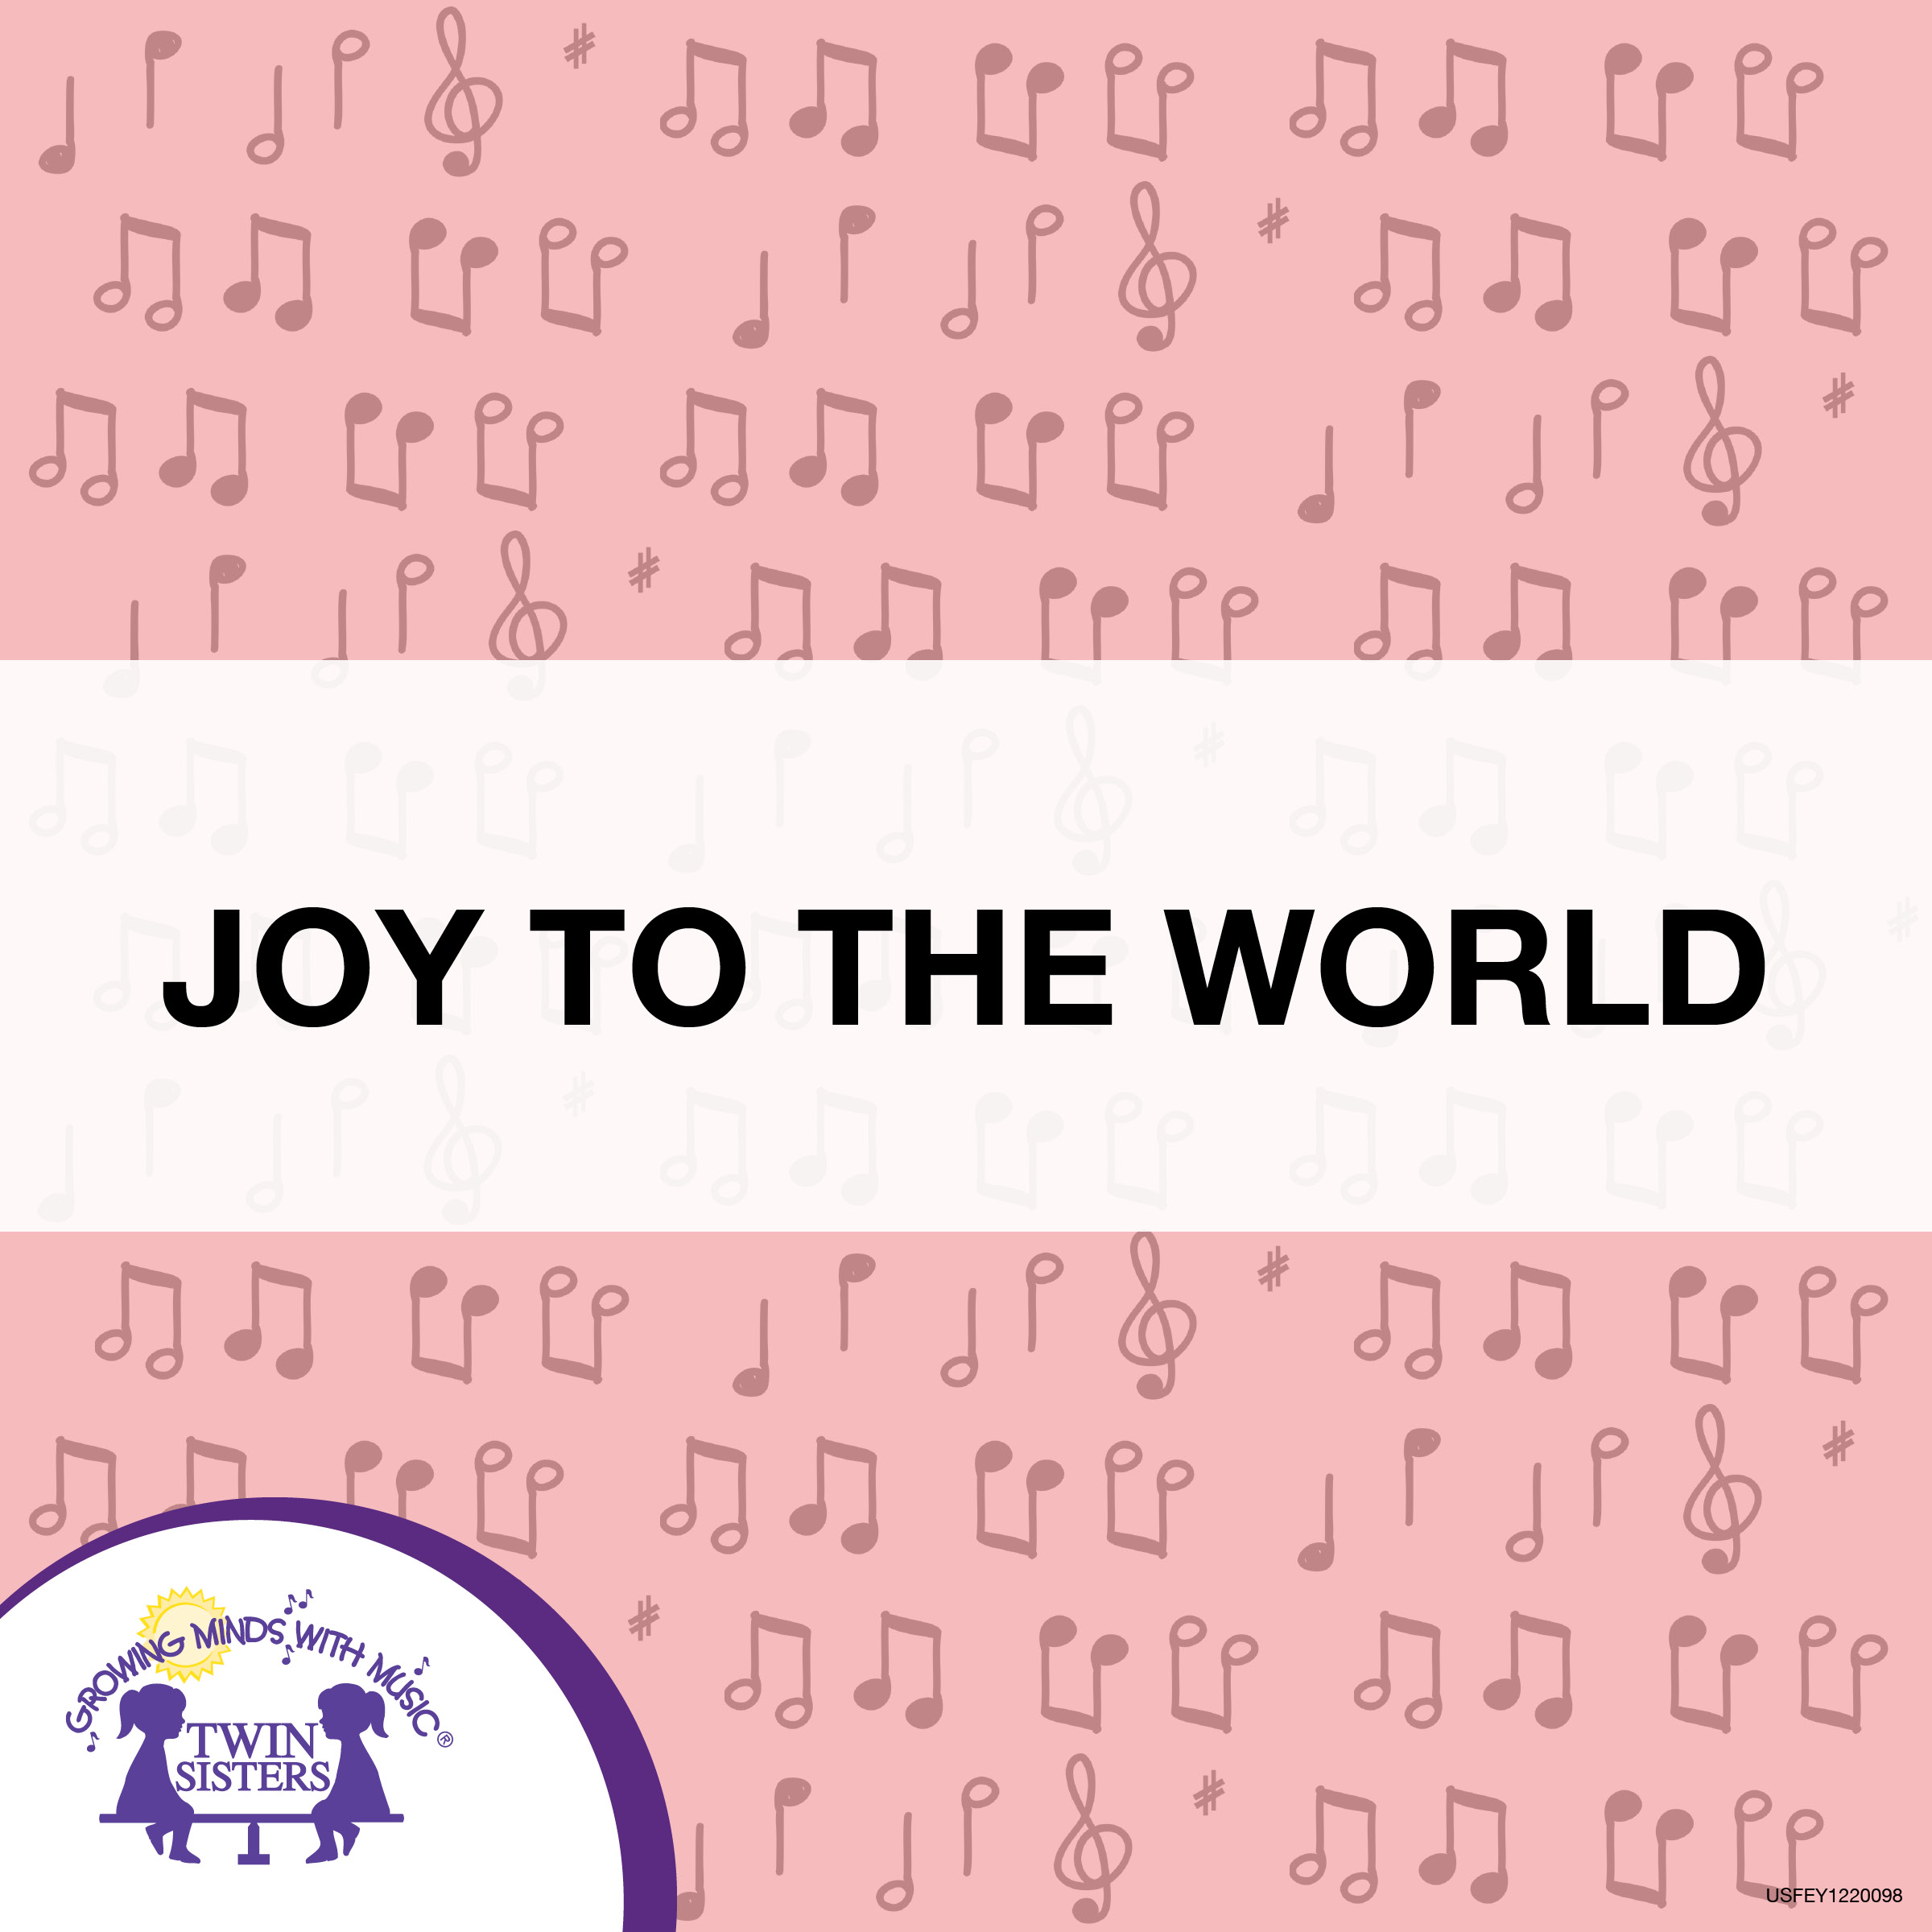 Joy To The World - Twin Sisters